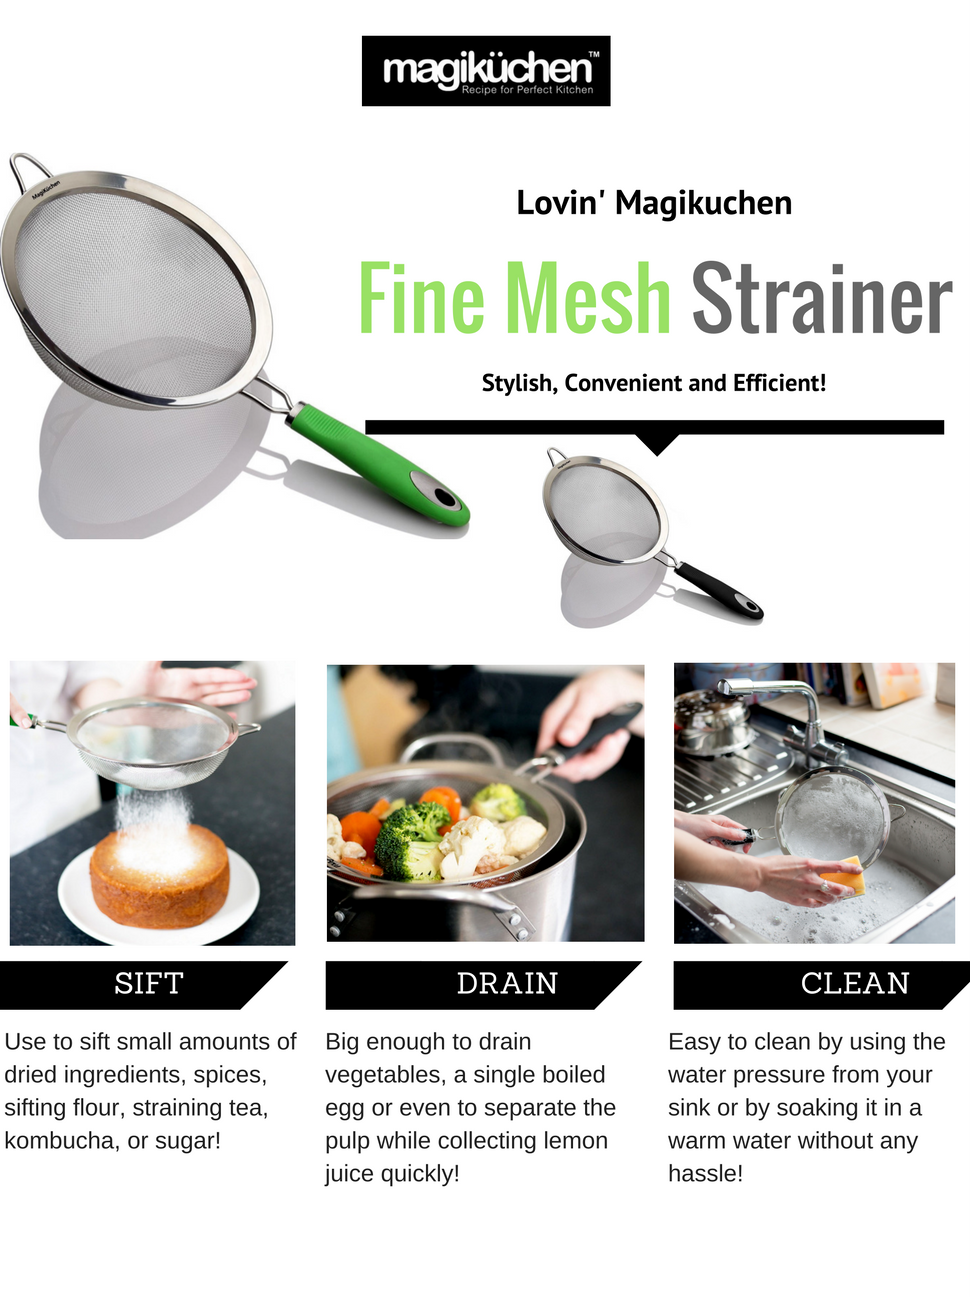 Magikuchen 8 premium stainless steel colander for Perfect kitchen description